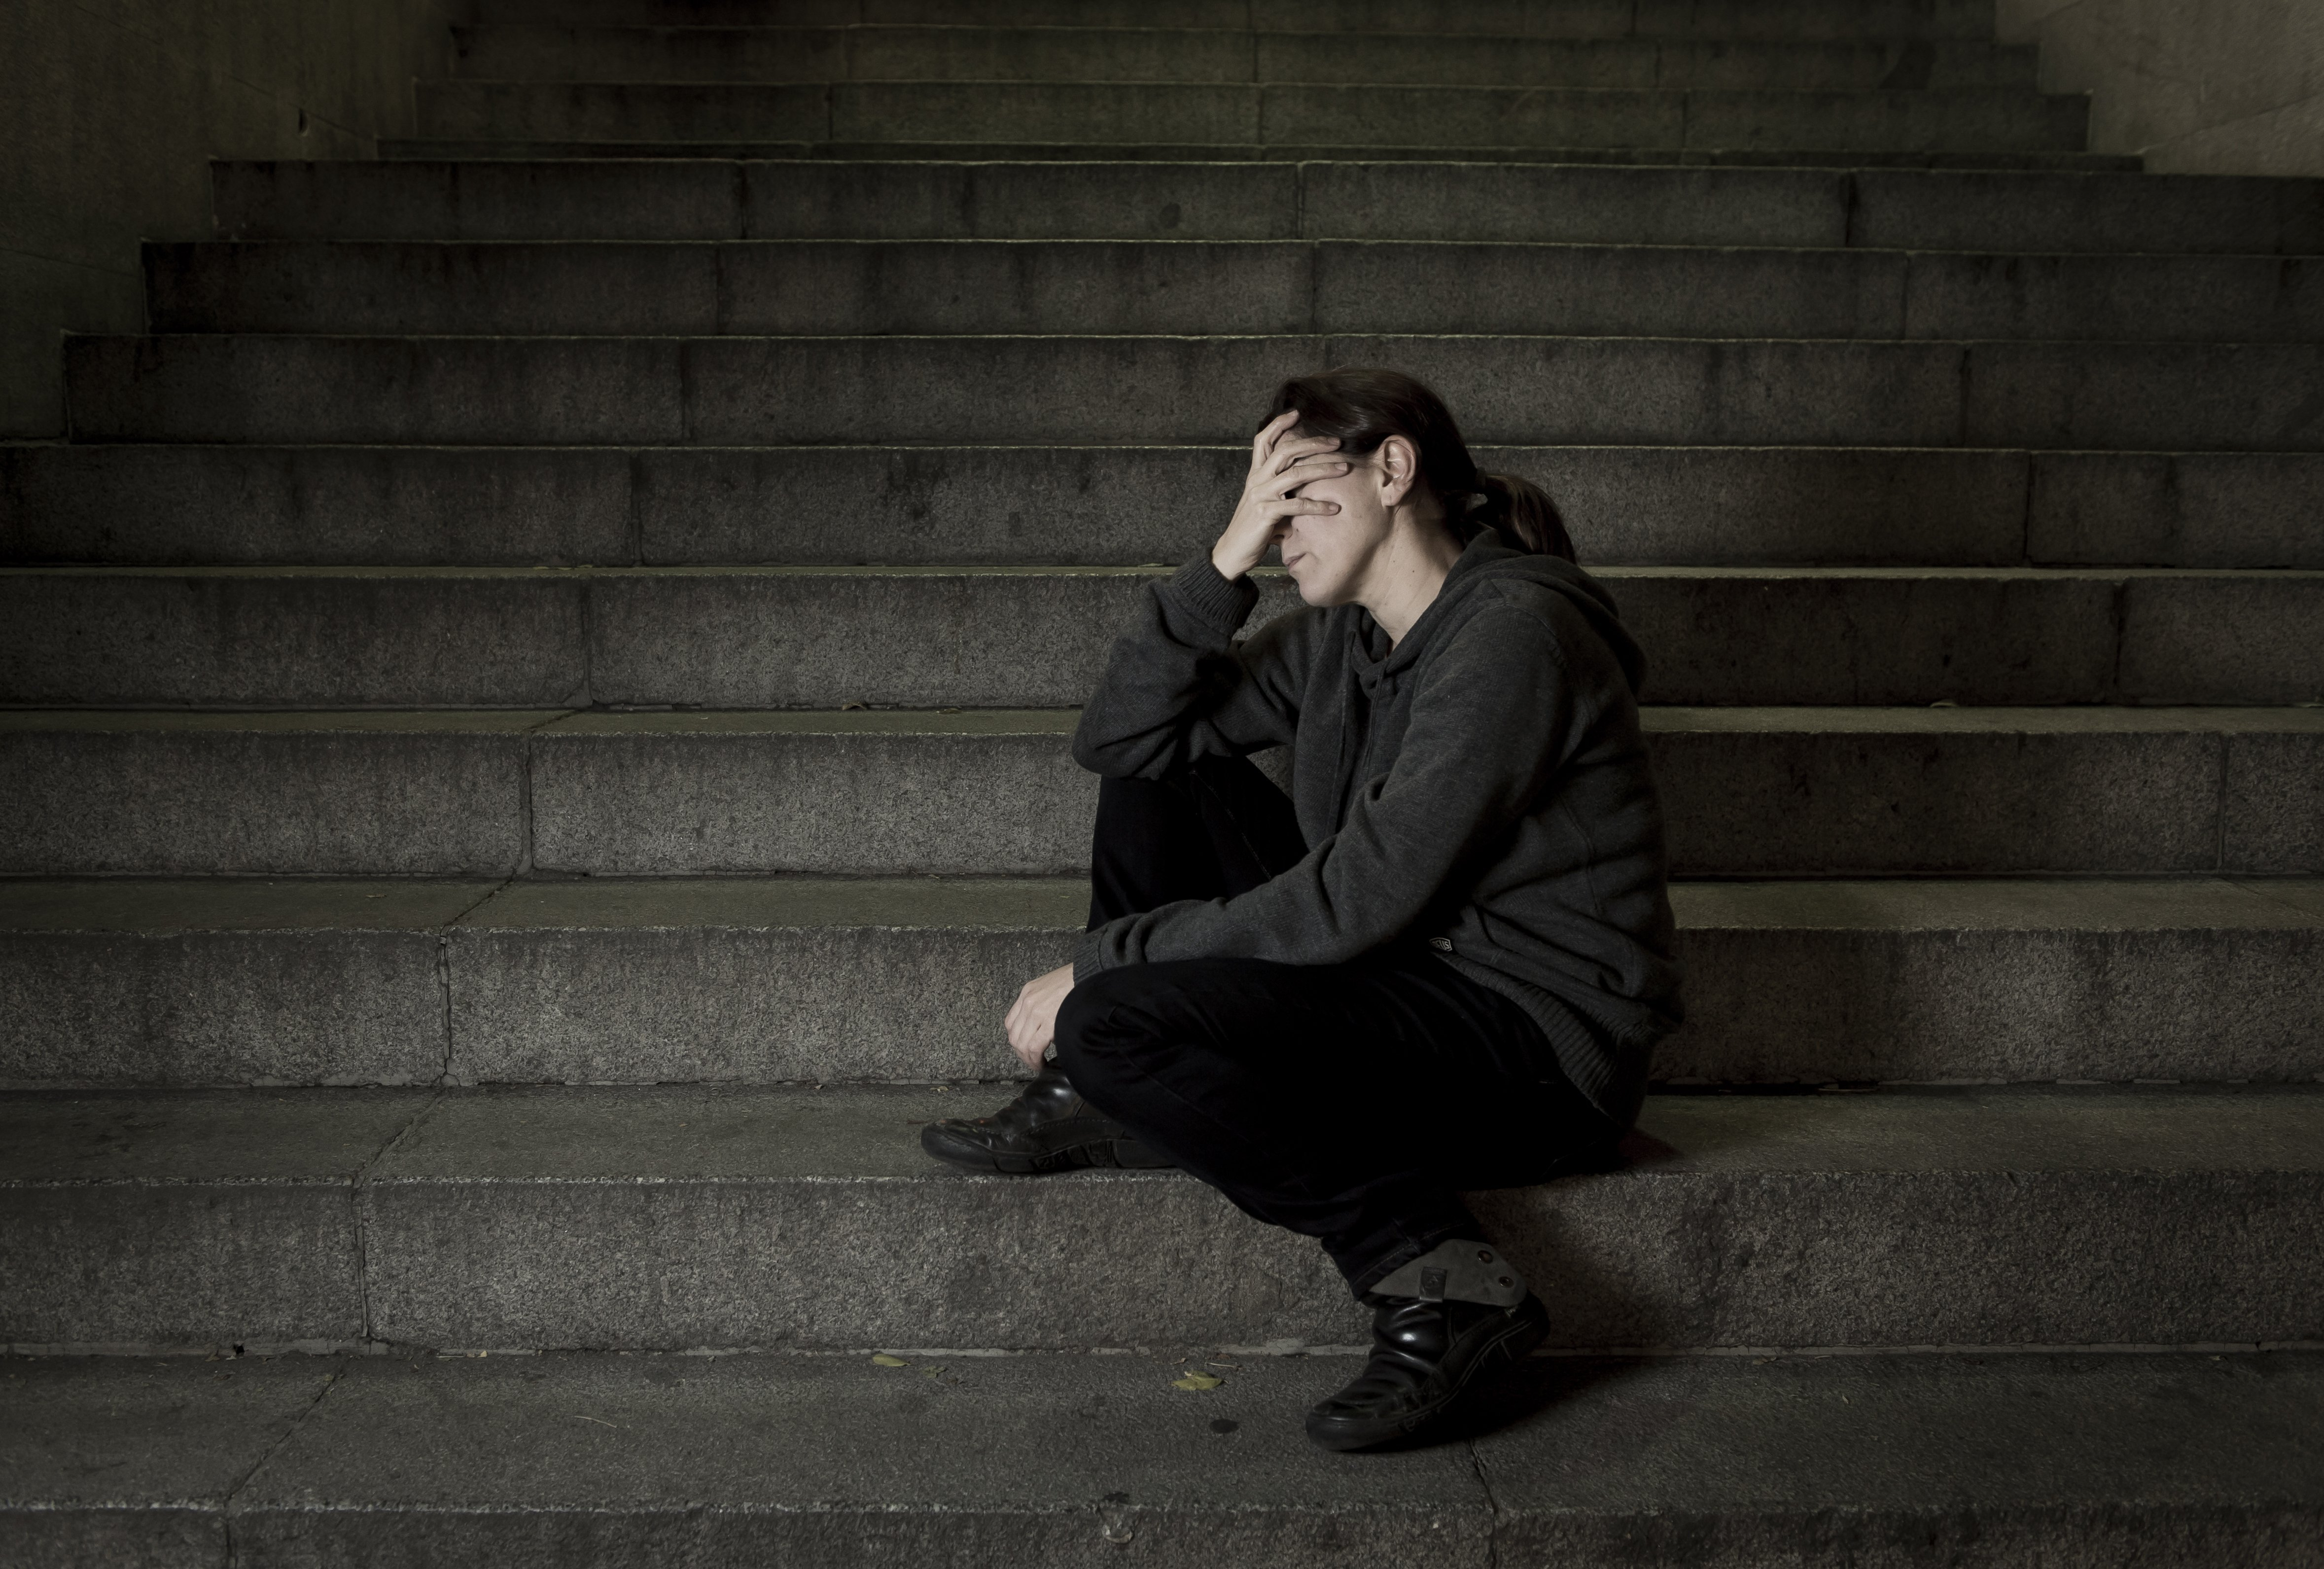 Sad woman alone on street subway staircase | Photo: Shutterstock